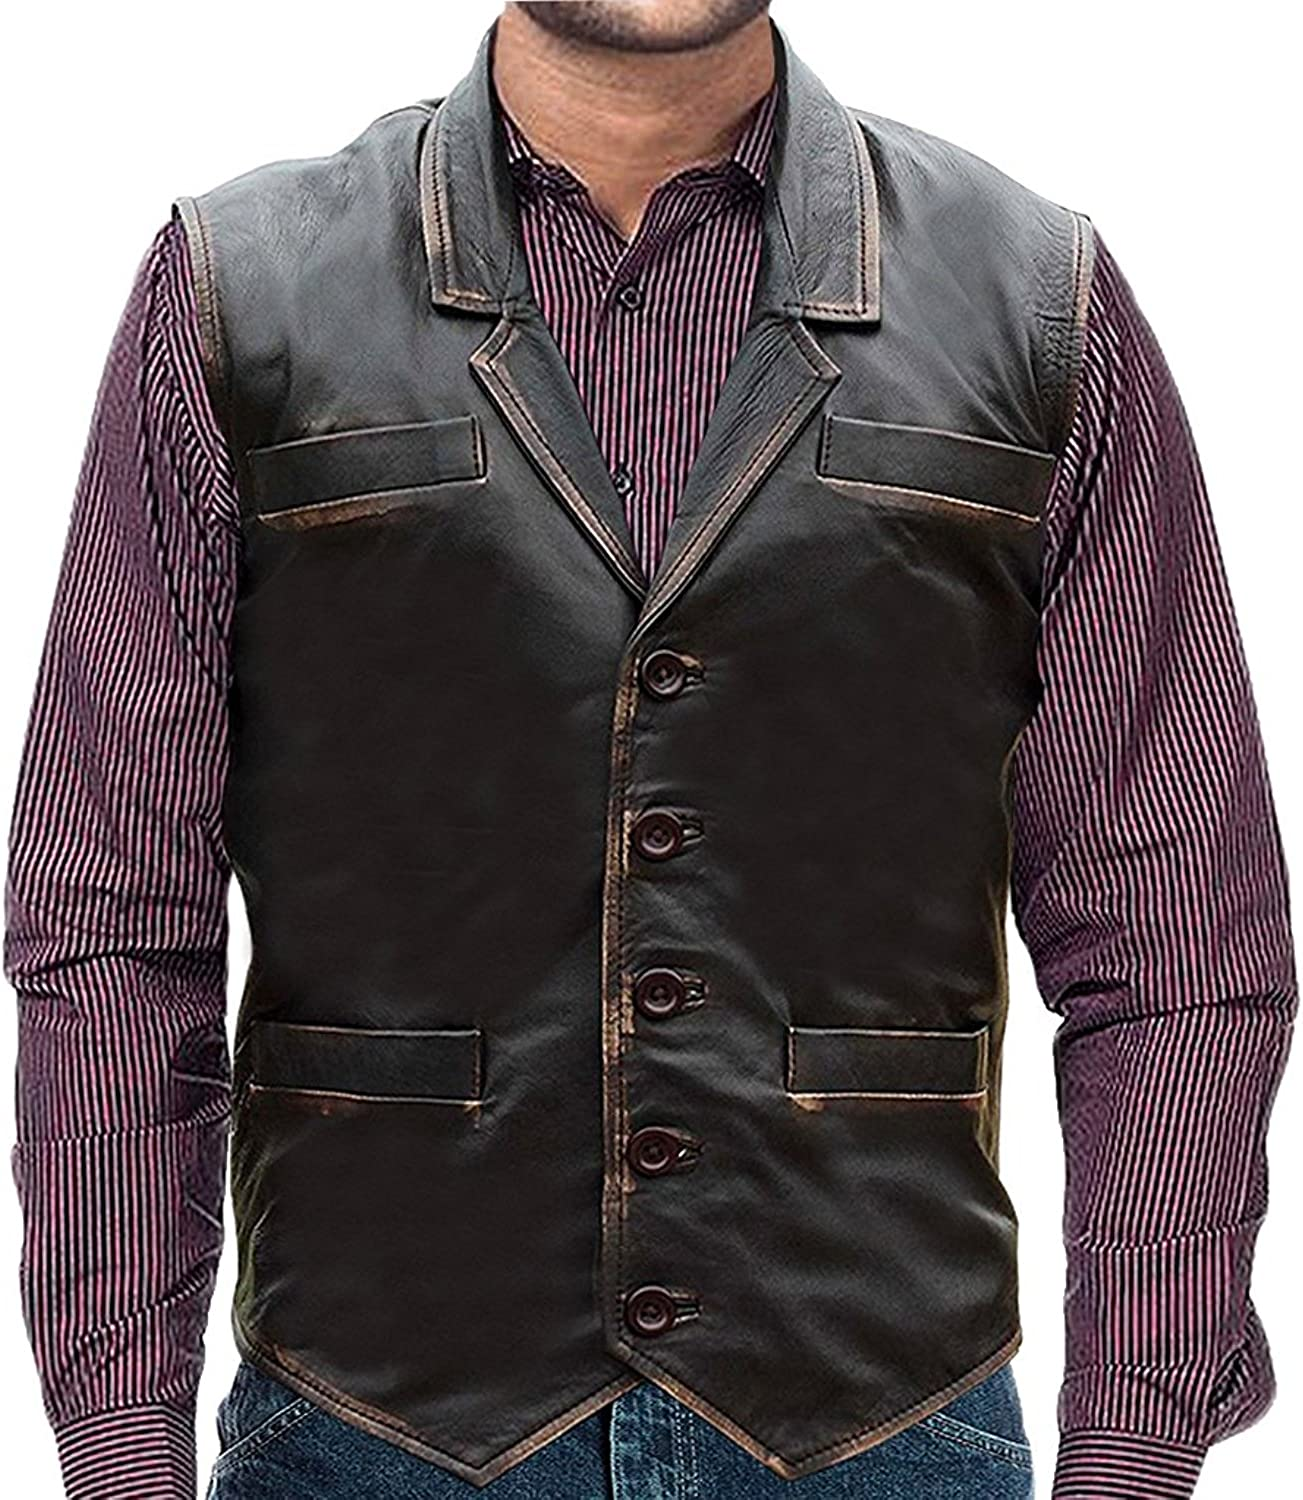 HOLLYWOOD LEATHER HAWK Distressed Brown Biker Leather Vest for Men (M (Fit for 41-42 inches Actual Chest Size))